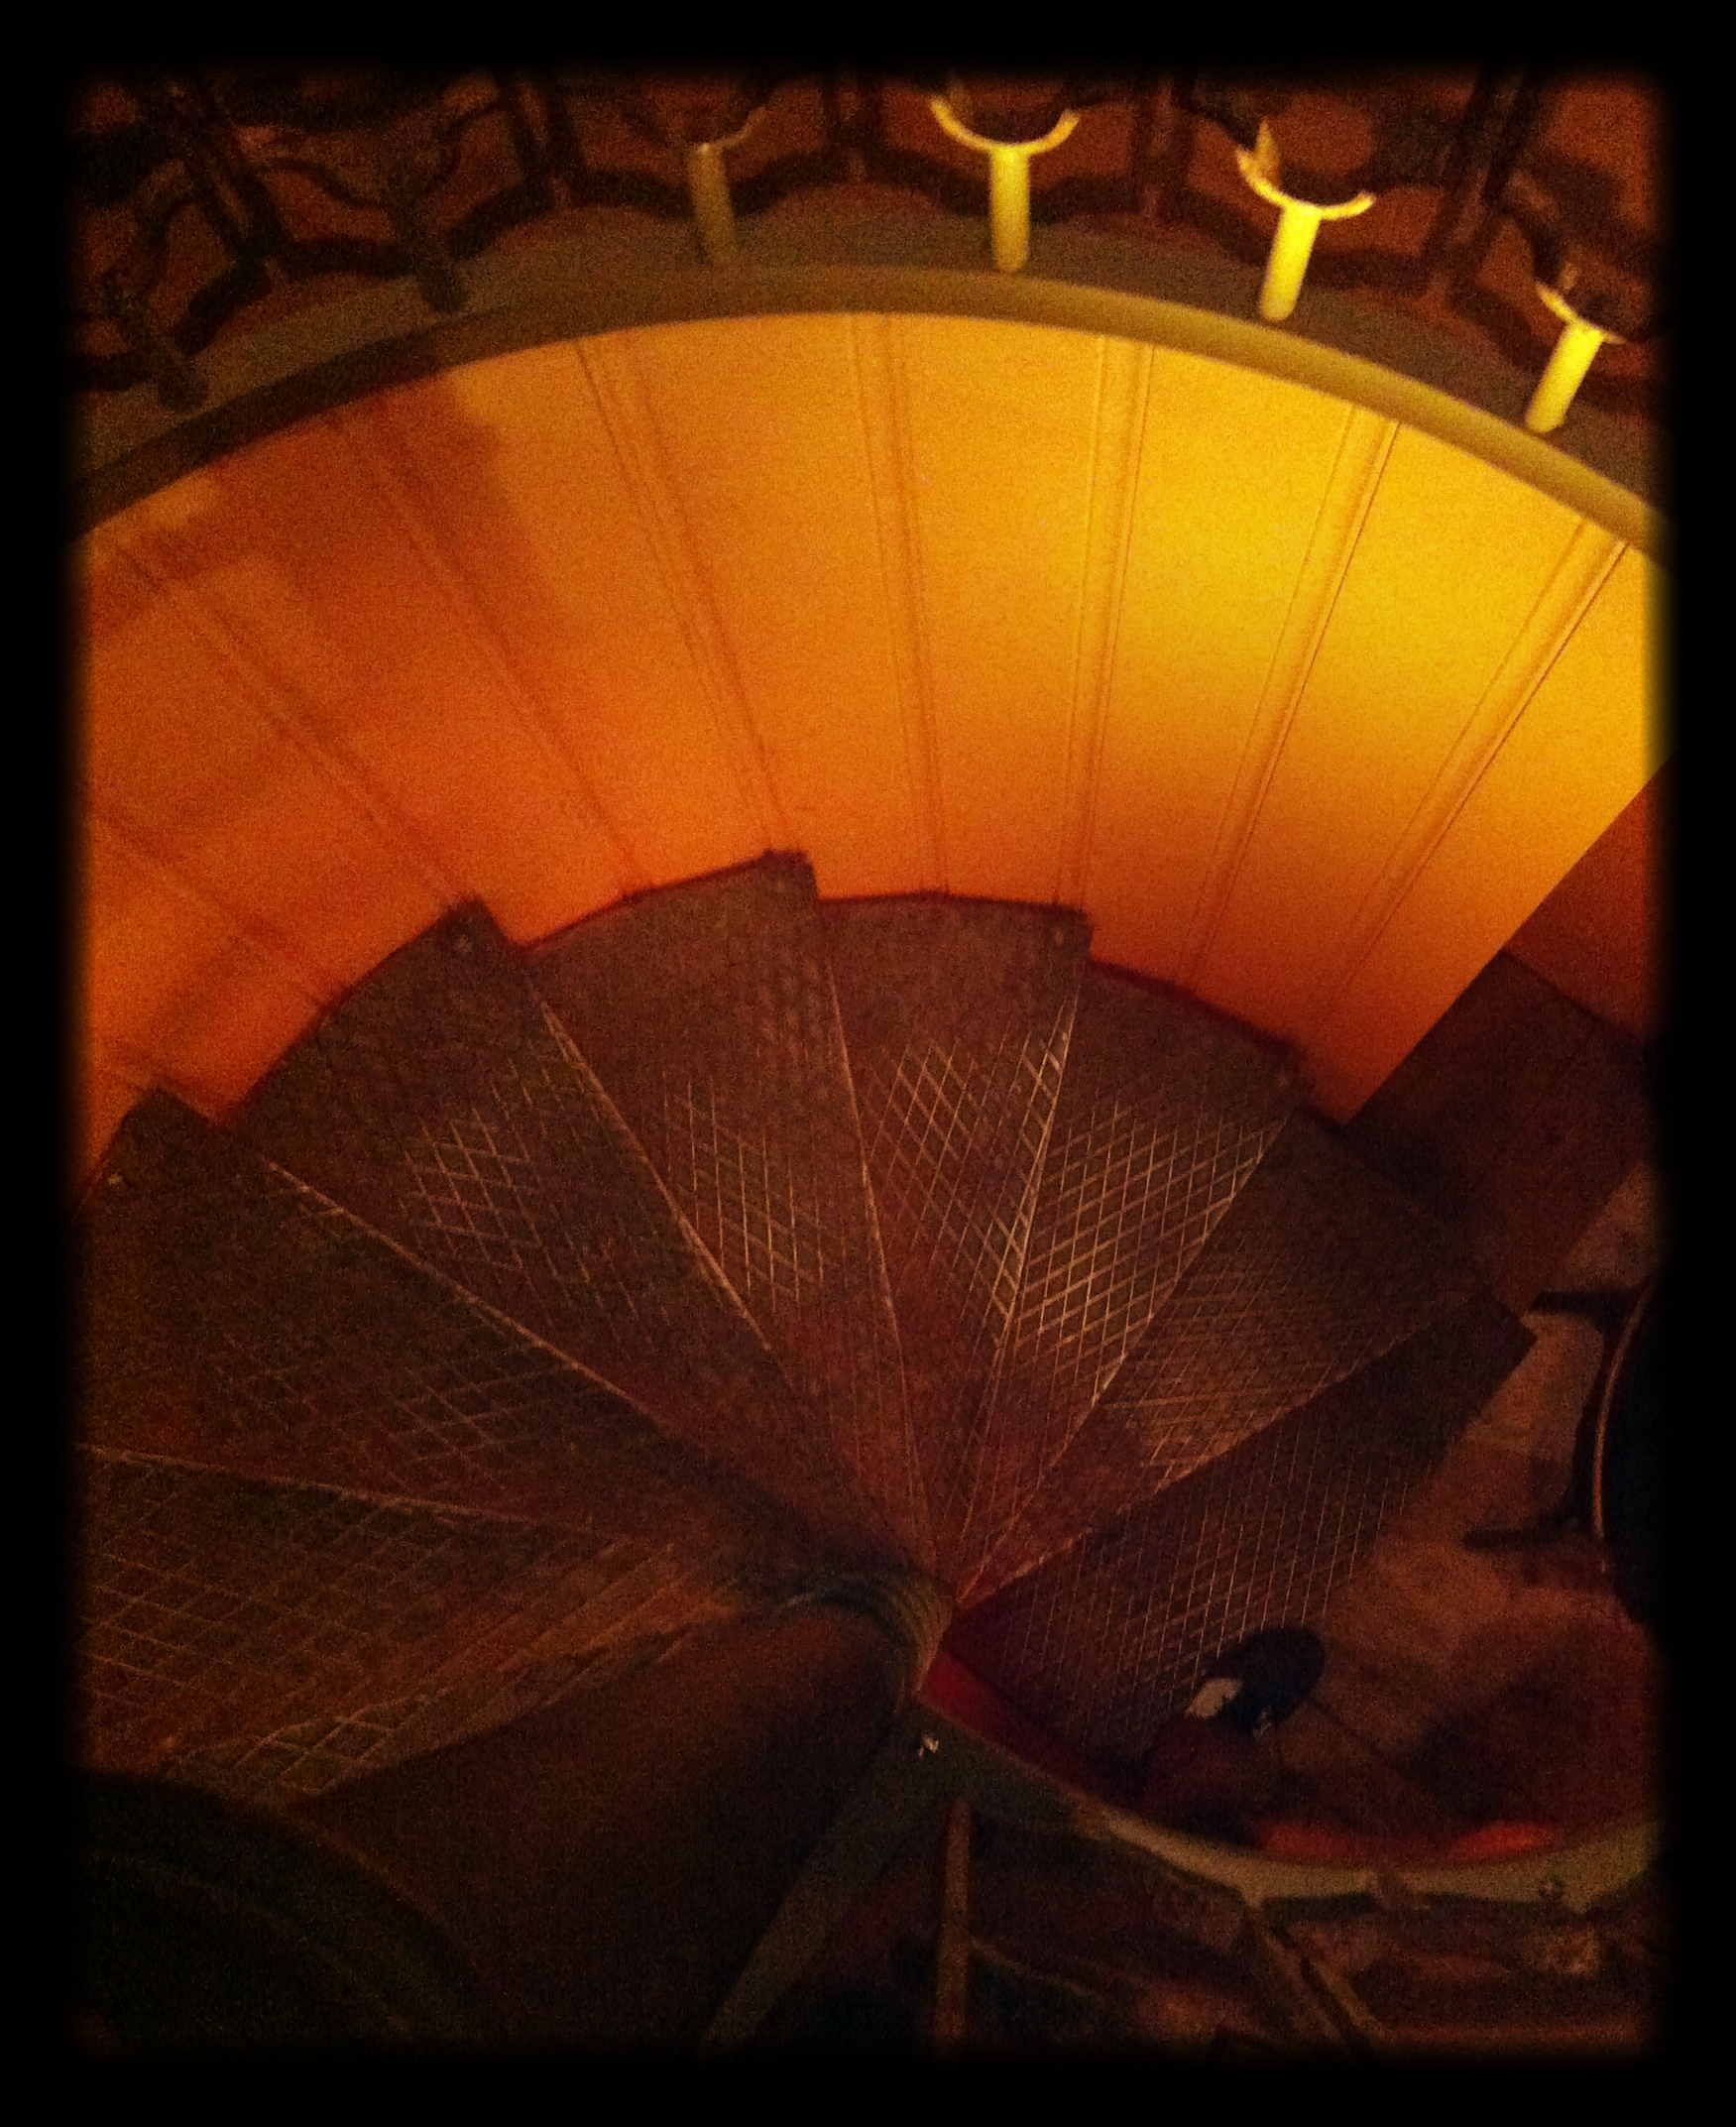 Steel_spiral_Staircase